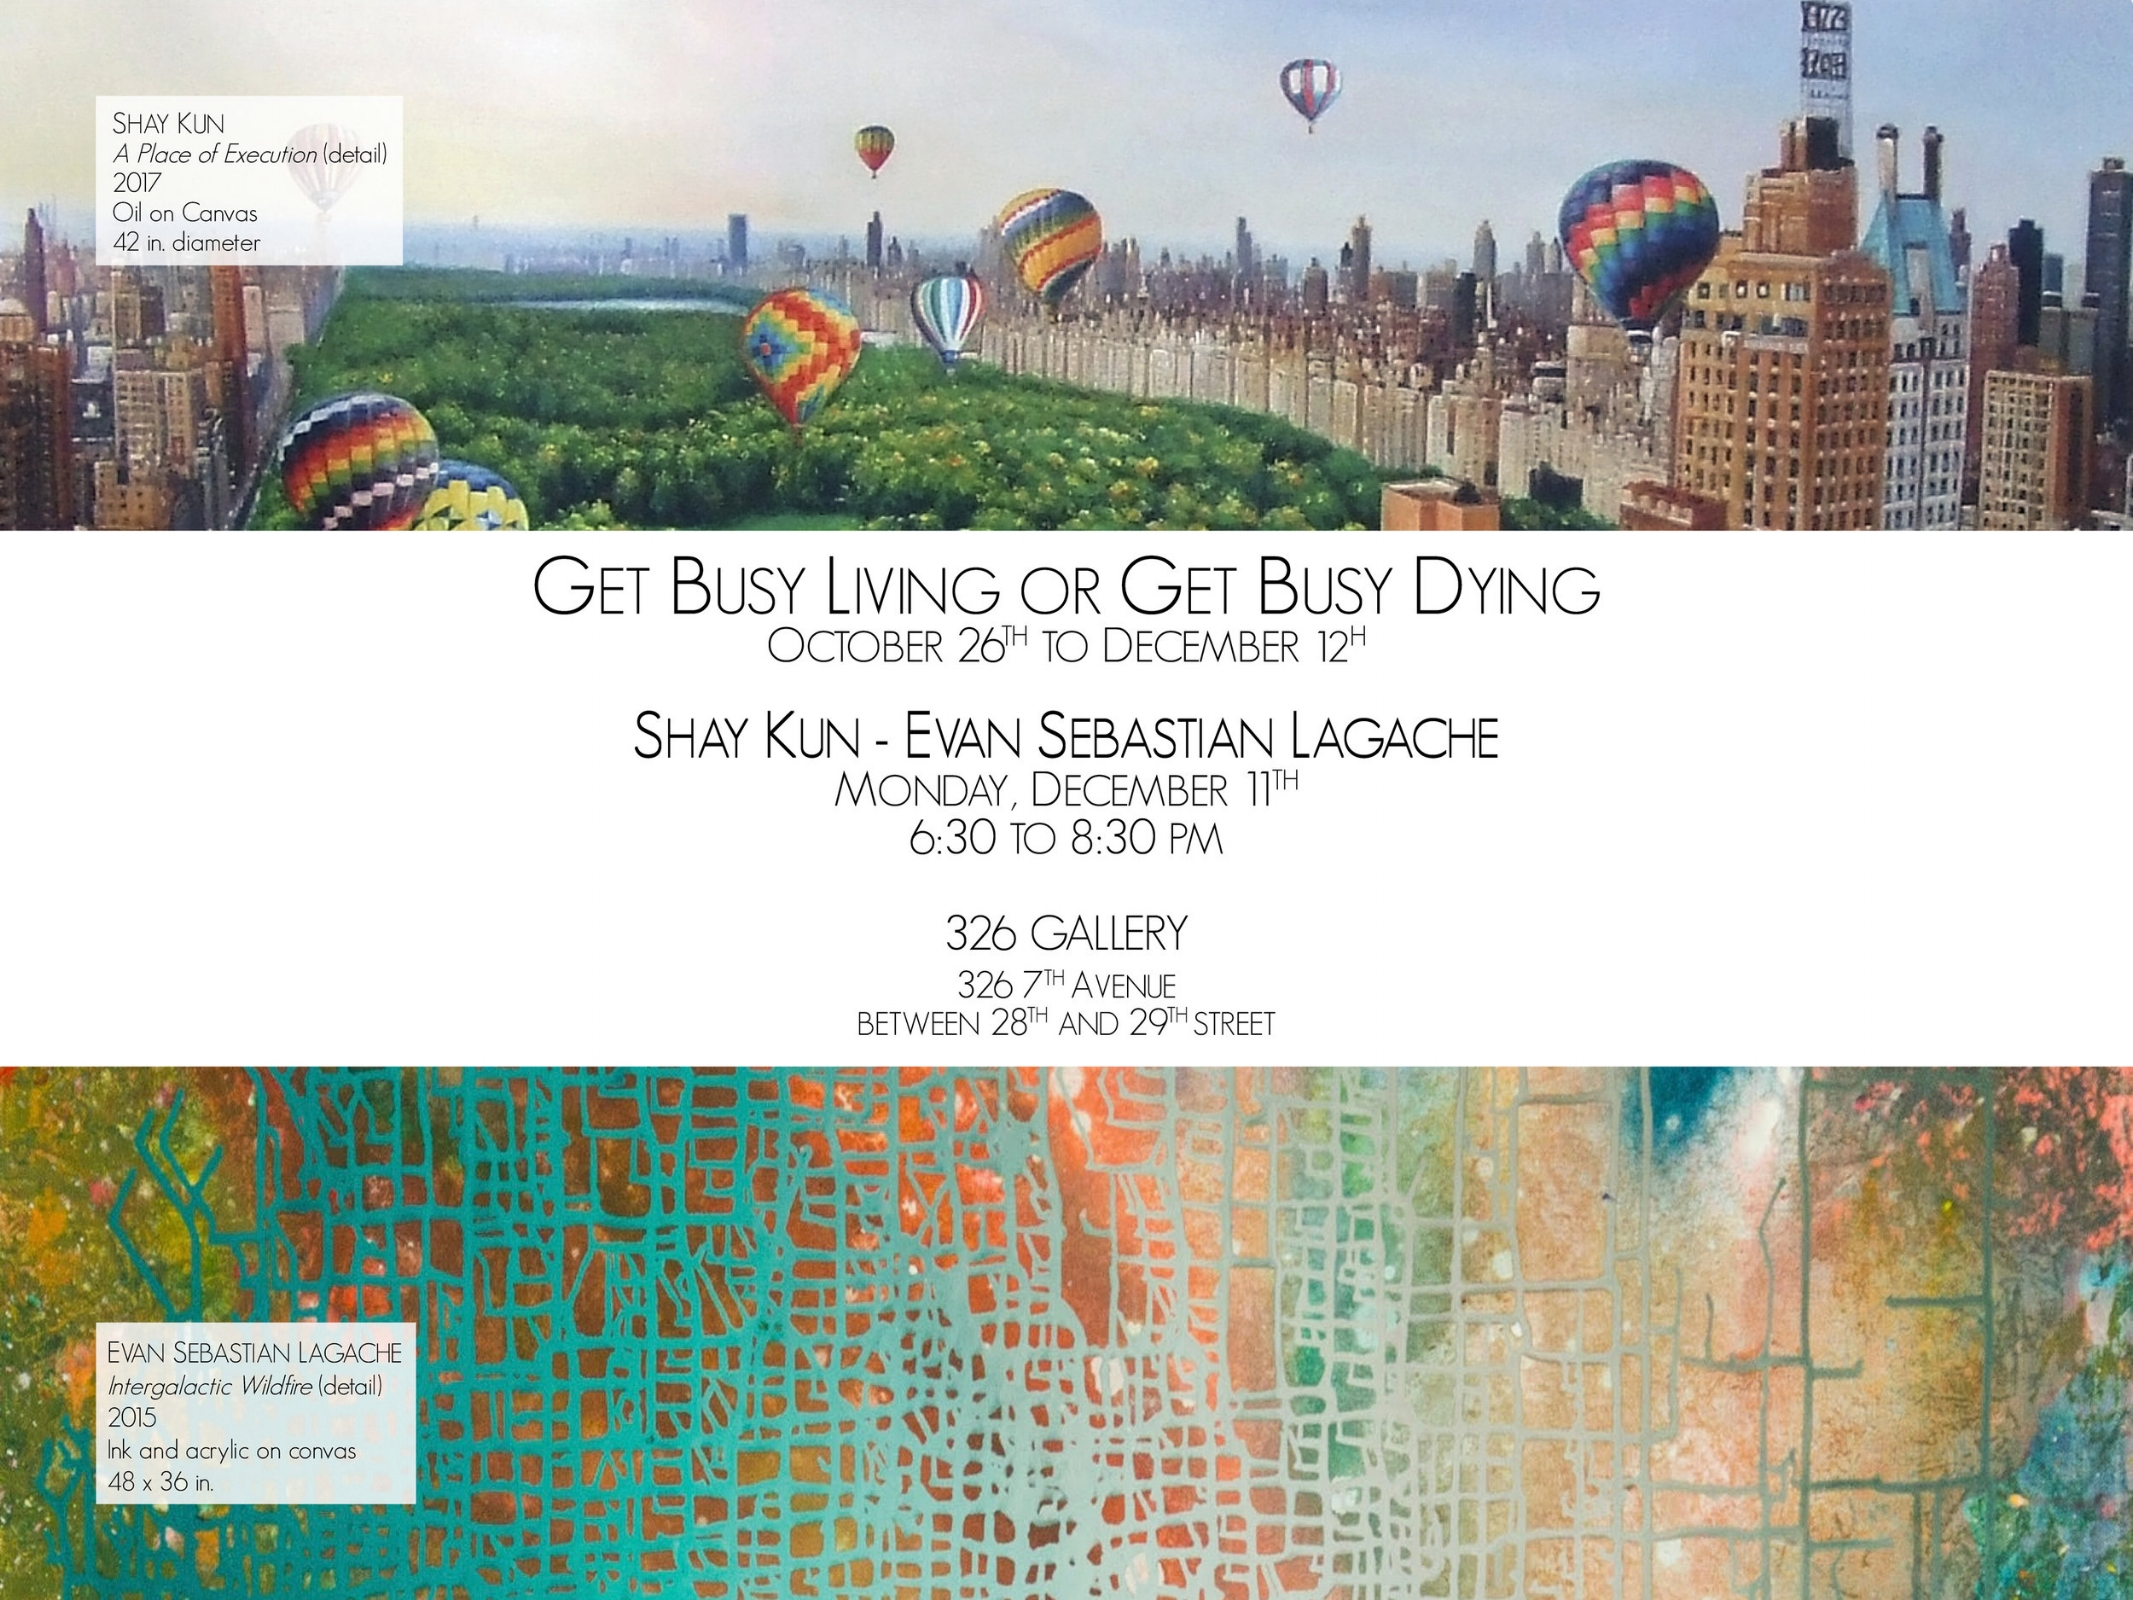 Get Busy Living or Get Busy Dying Joint Invitation.jpg